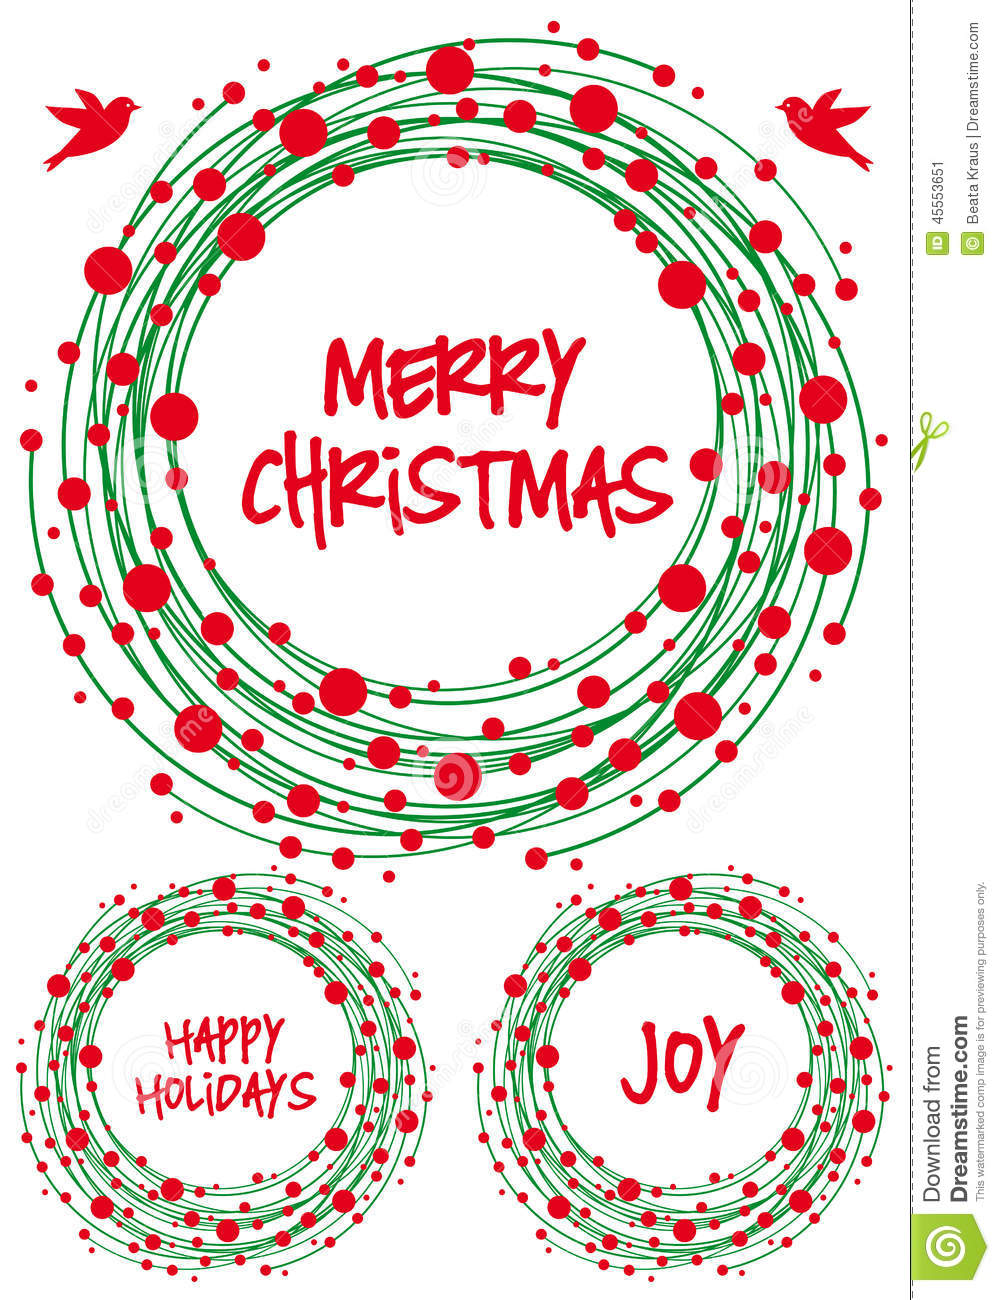 Christmas Wreath, Vector Set Stock Vector - Image: 45553651